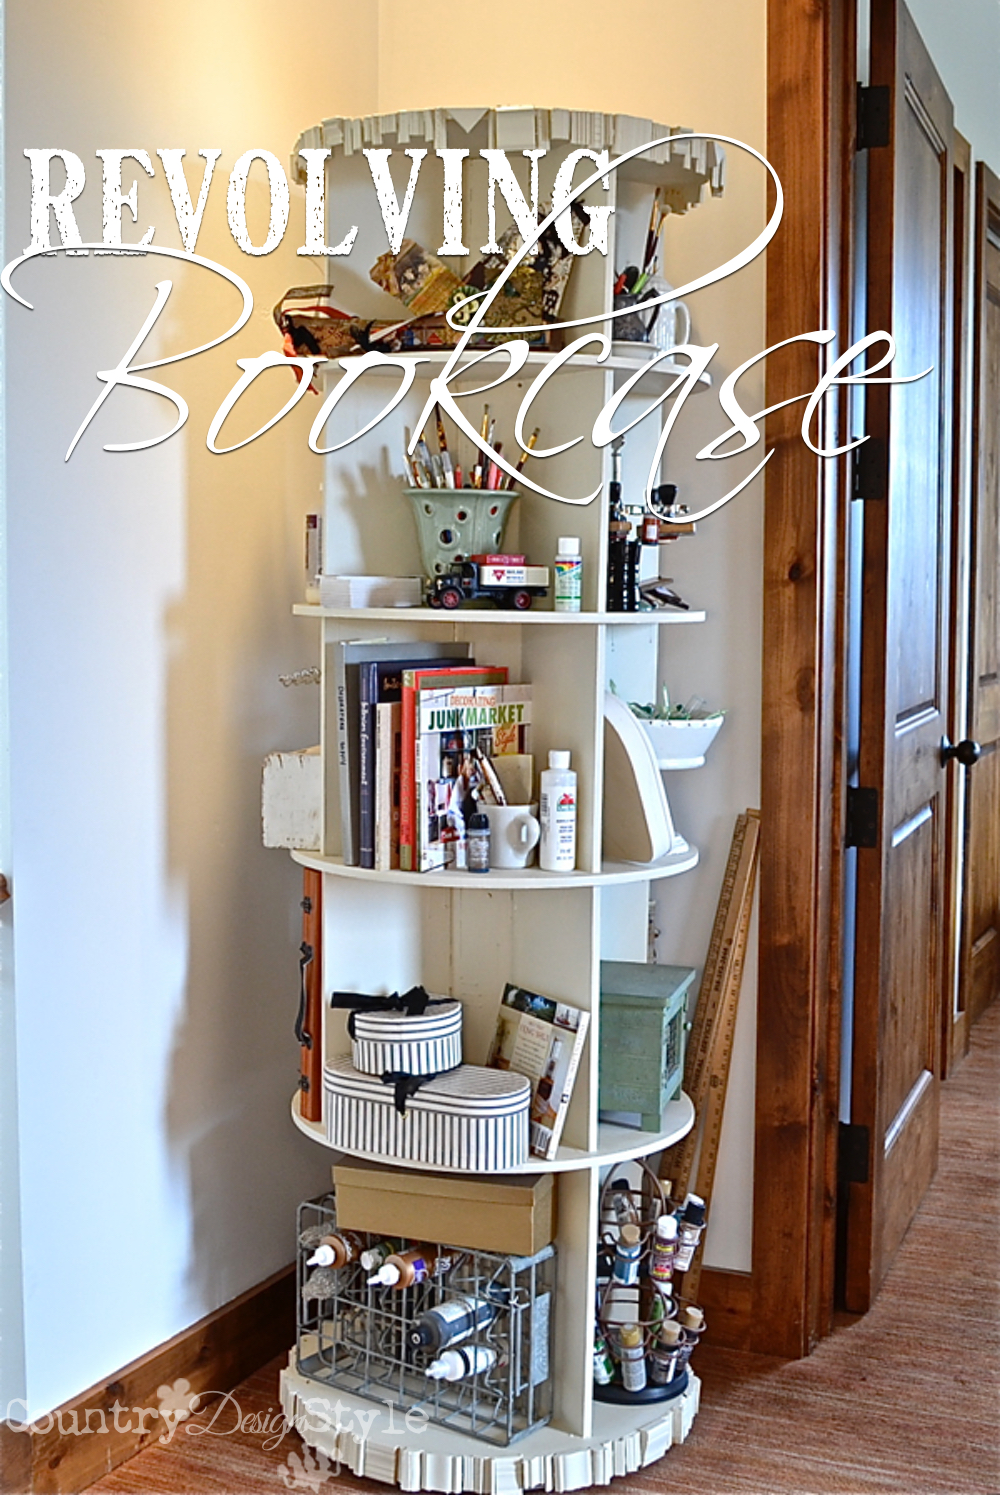 revolving-bookcase-country-design-style-pn